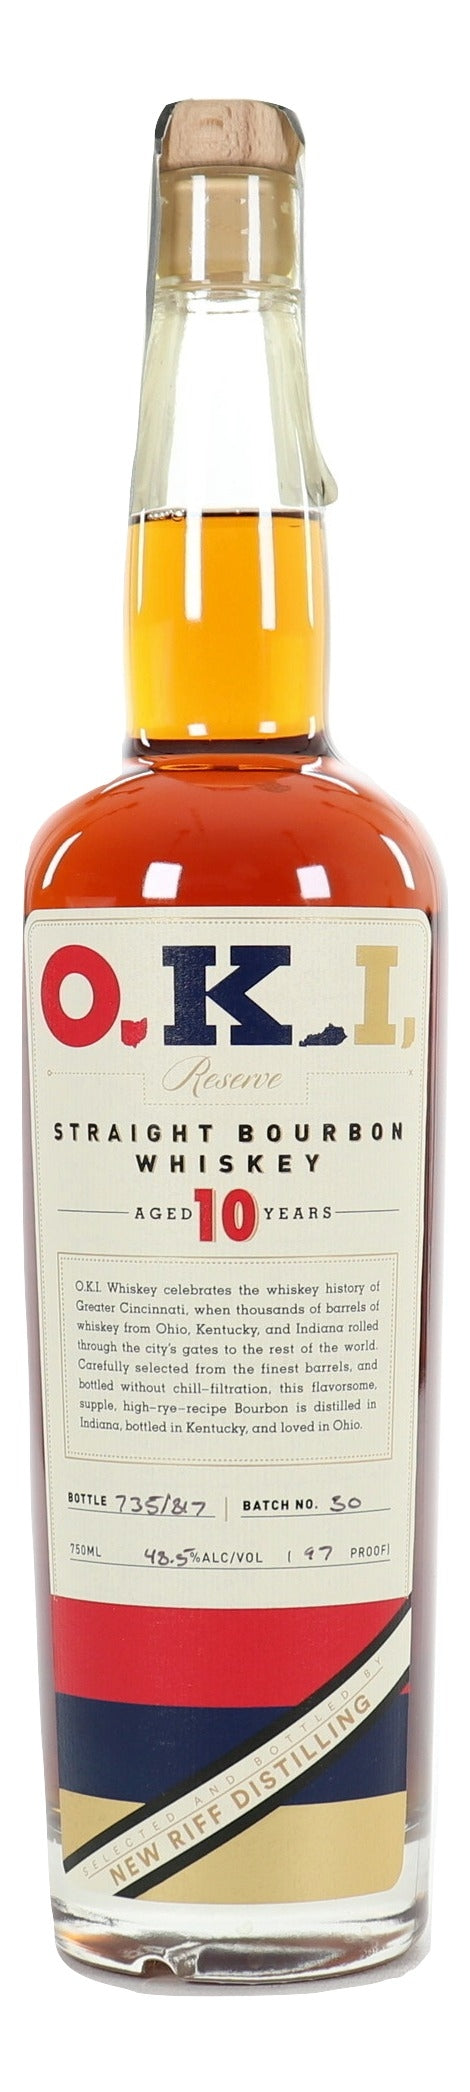 O.K.I. 10 Year Old Straight Bourbon Whiskey Batch 30 For Sale - NativeSpiritsOnline